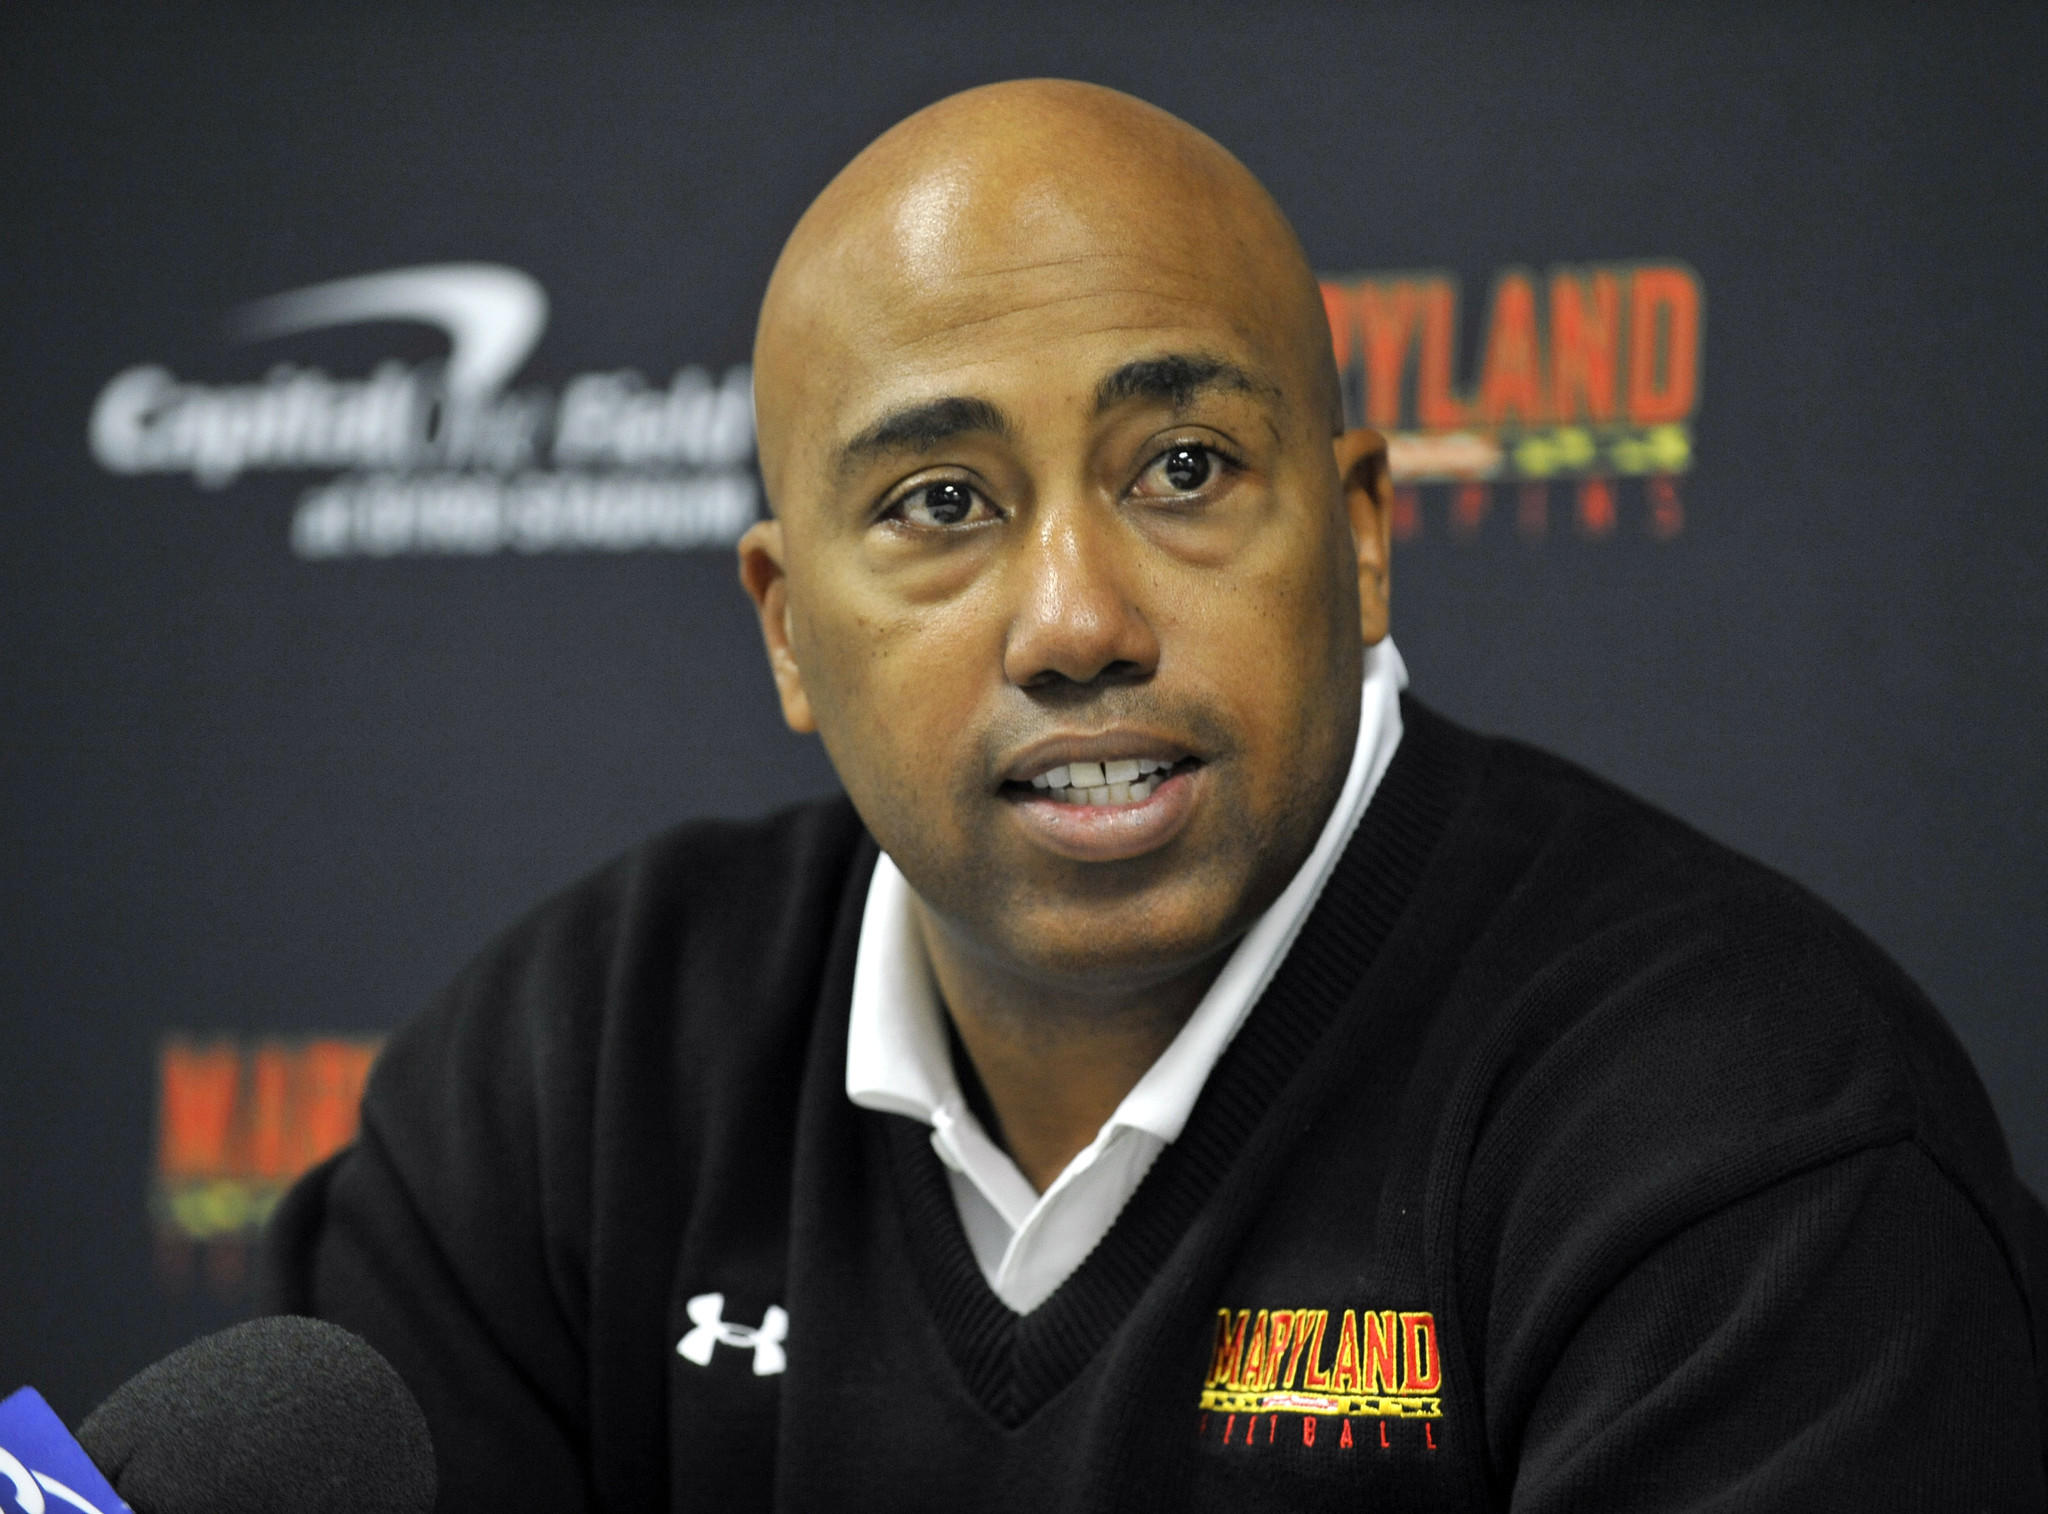 Terps defensive coordinator Brian Stewart said improving players' tackling will be among the items on the agenda during the spring practice session.